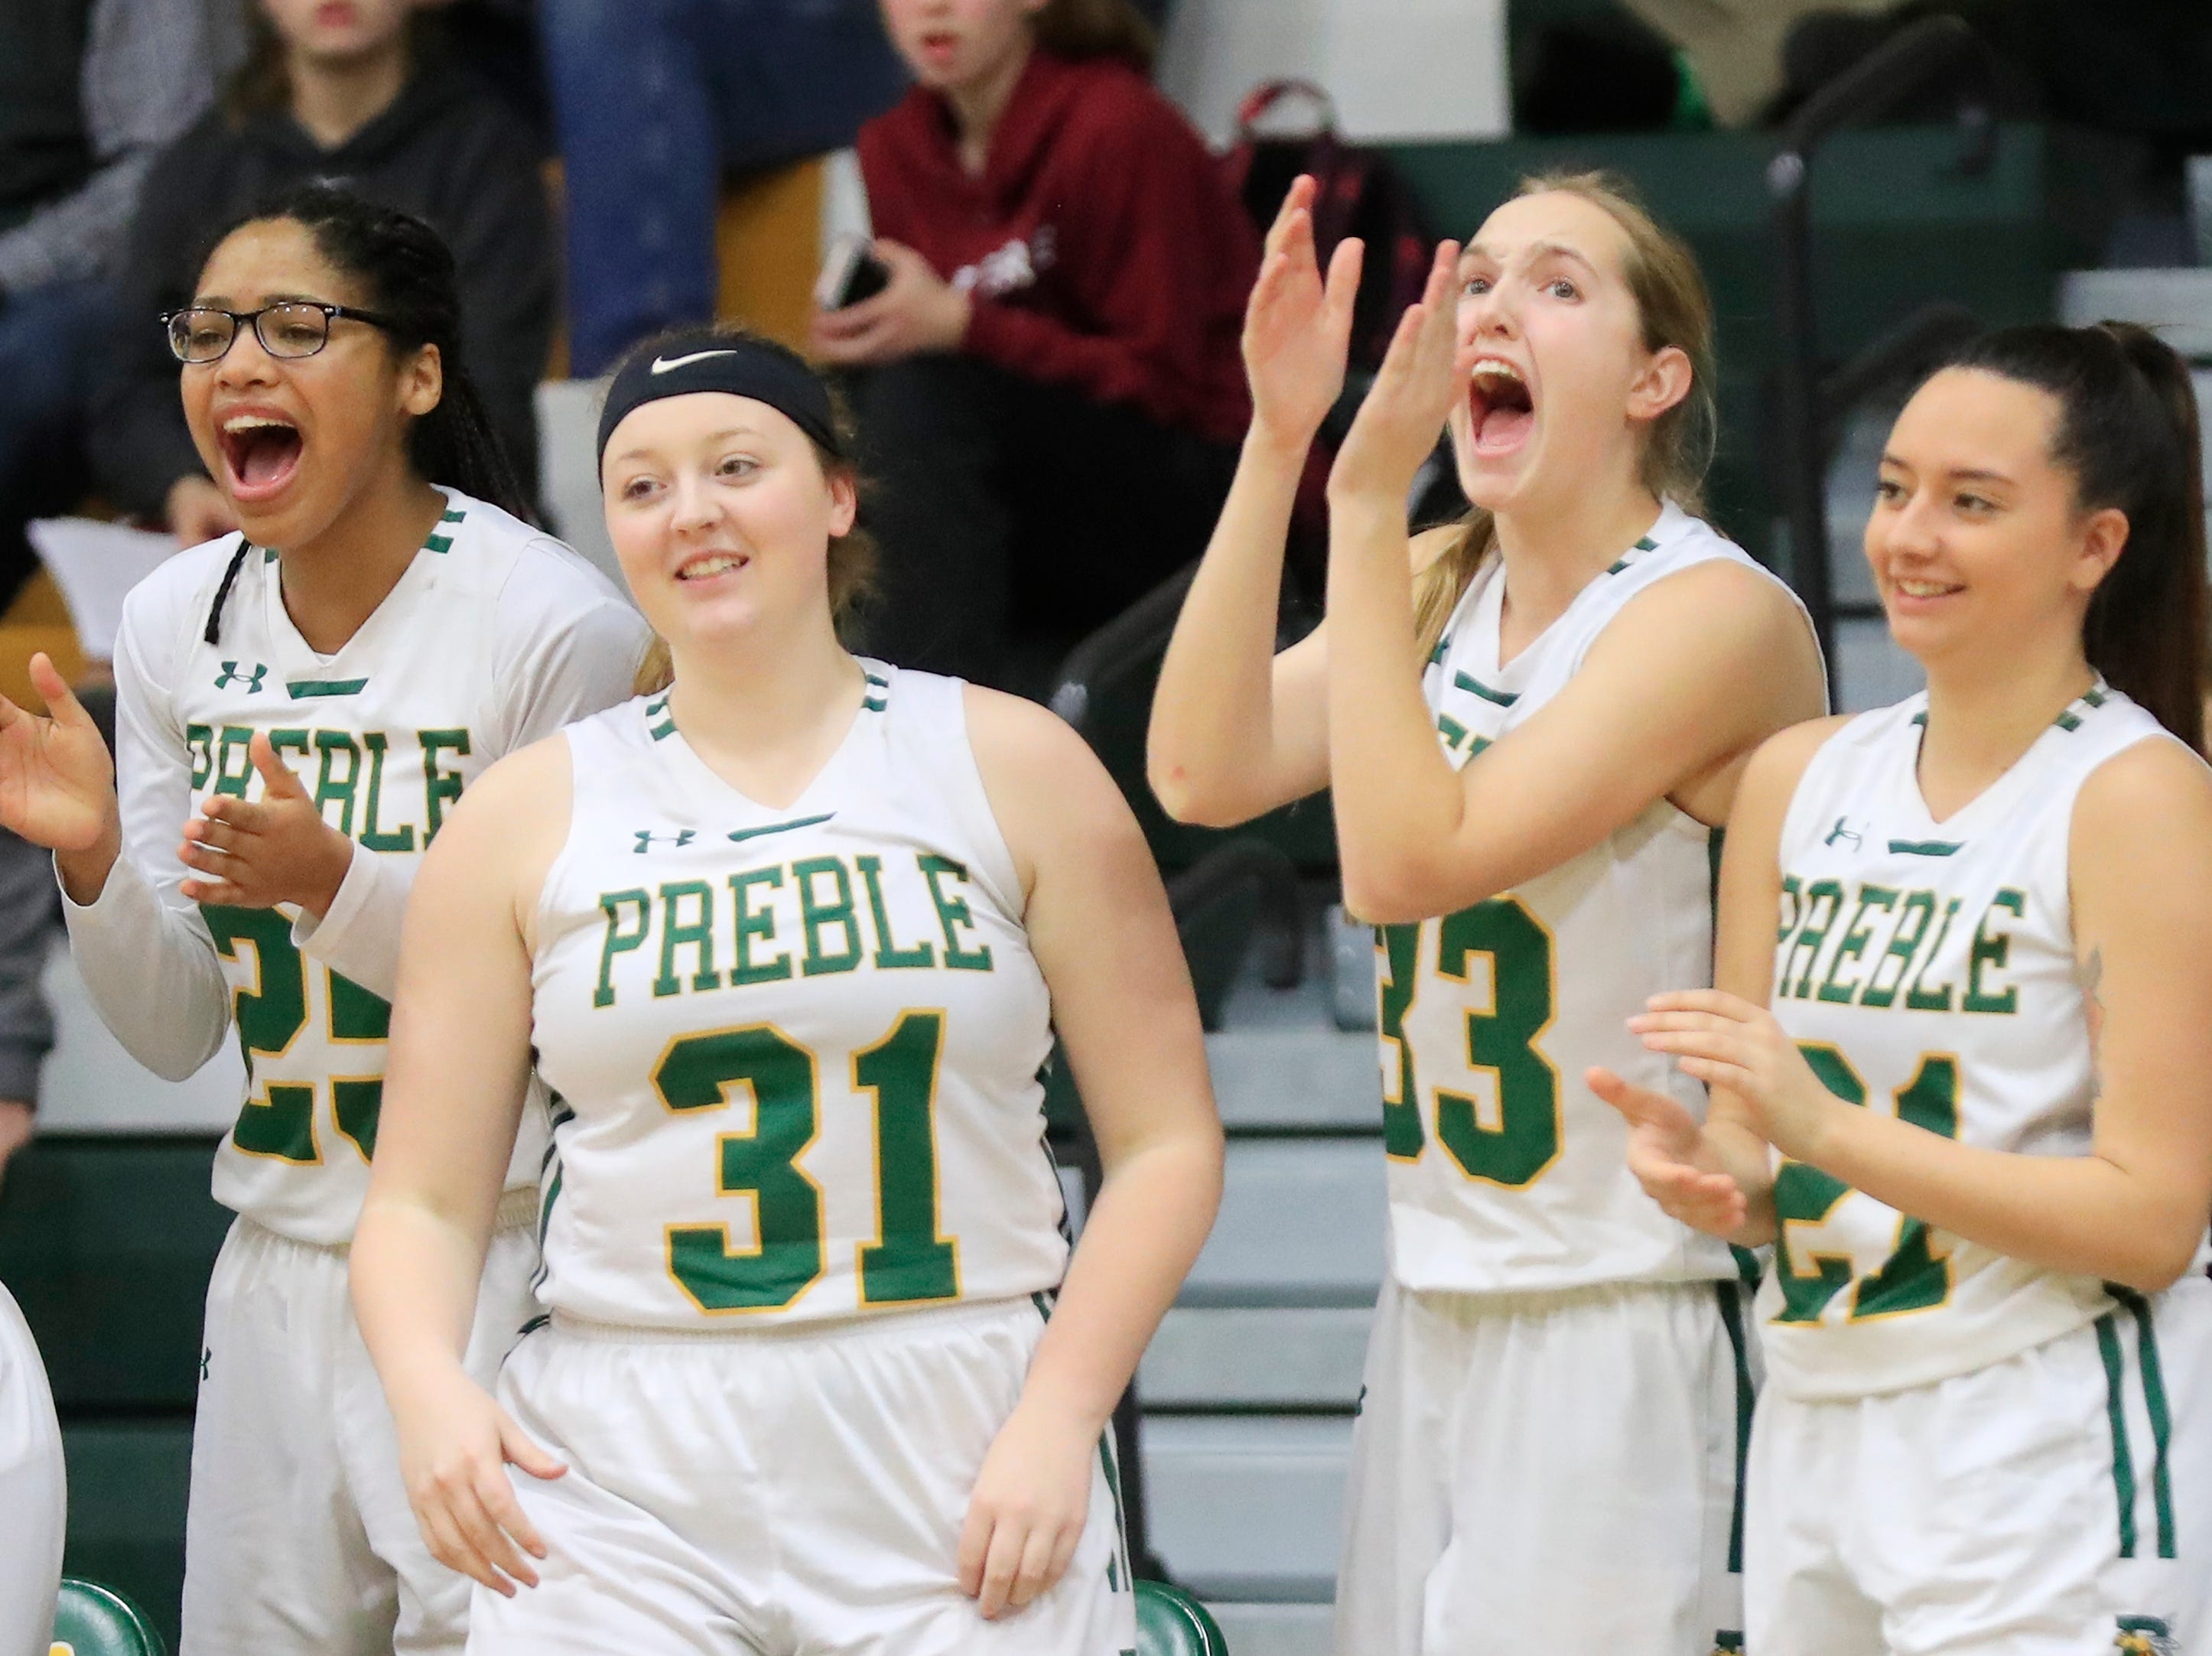 Green Bay Preble players celebrate from the bench against De Pere in a girls basketball game at Preble high school on Tuesday, January 8, 2019 in Green Bay, Wis.